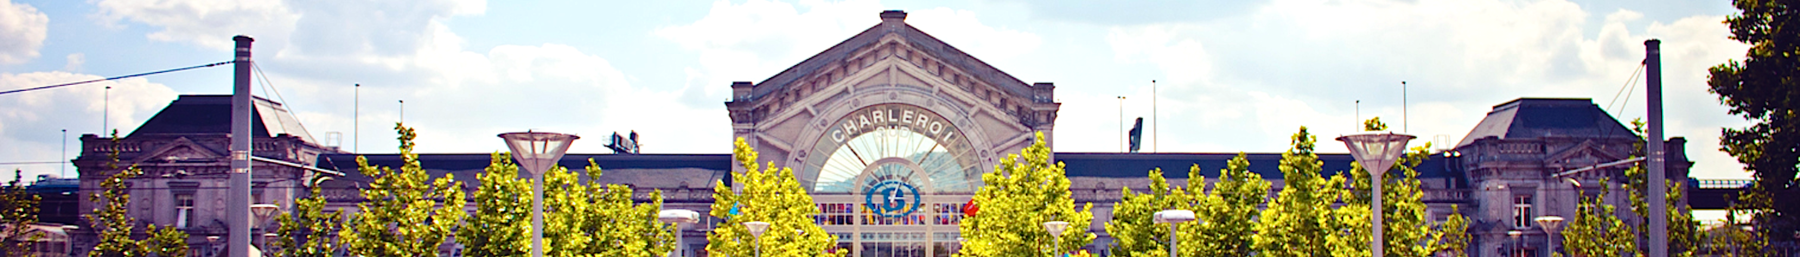 Charleroi Wikivoyage banner.png